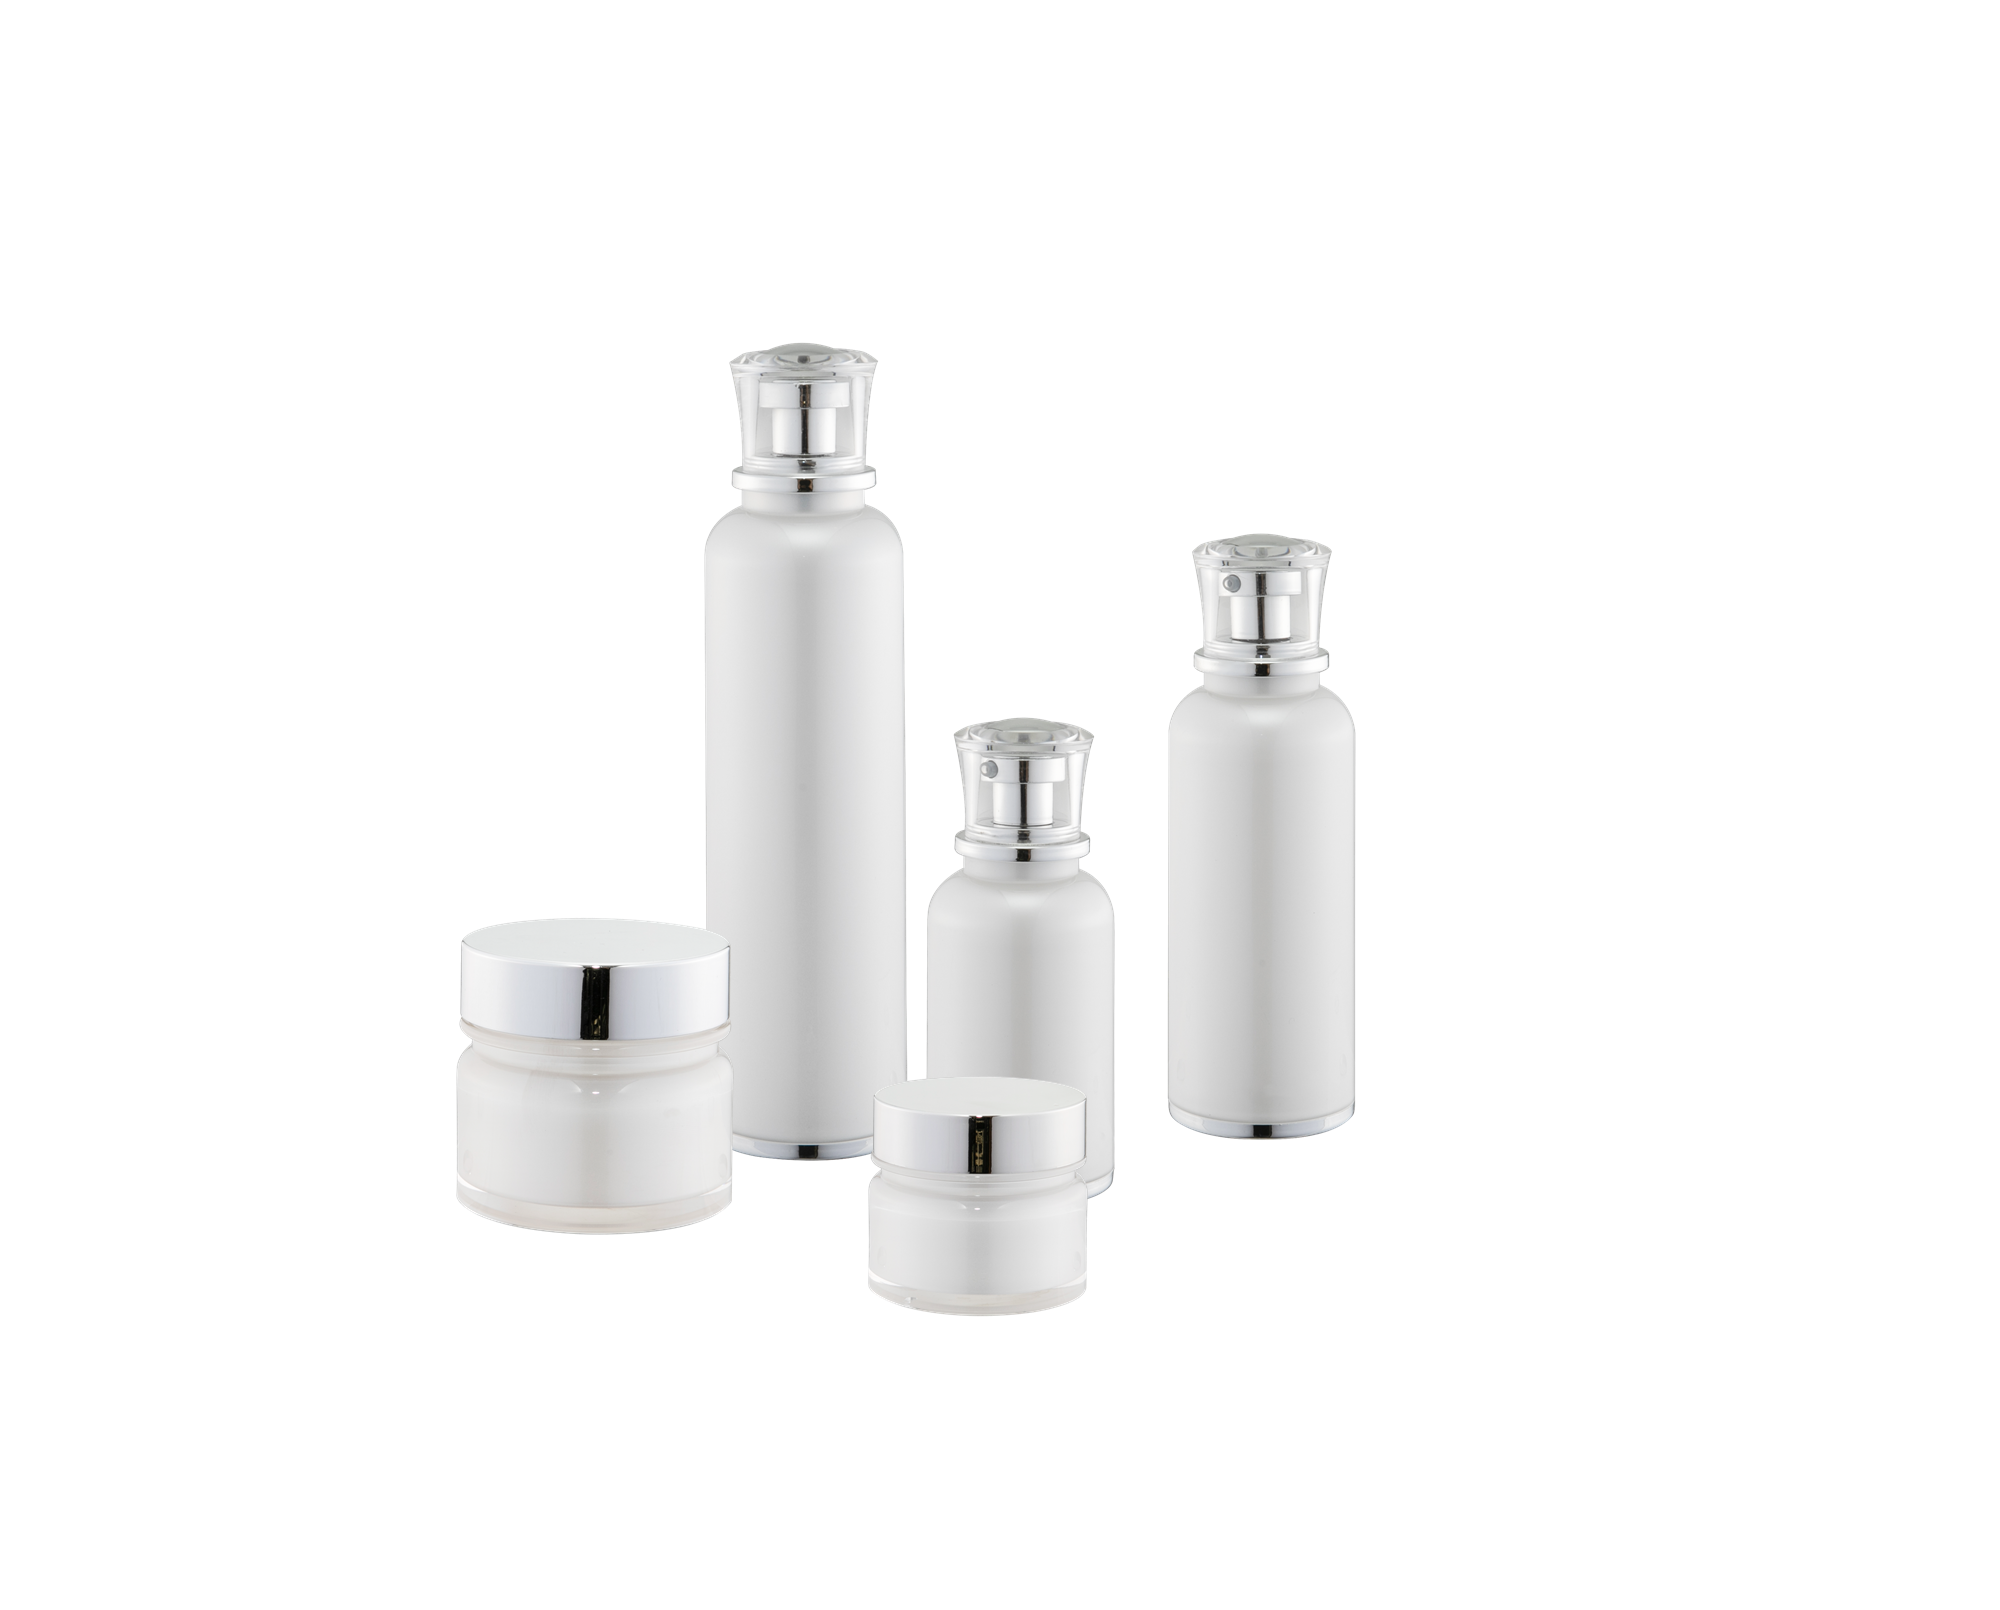 KR-4012 High class new arrival round cosmetic package acrylic lotion bottle and cream container jar